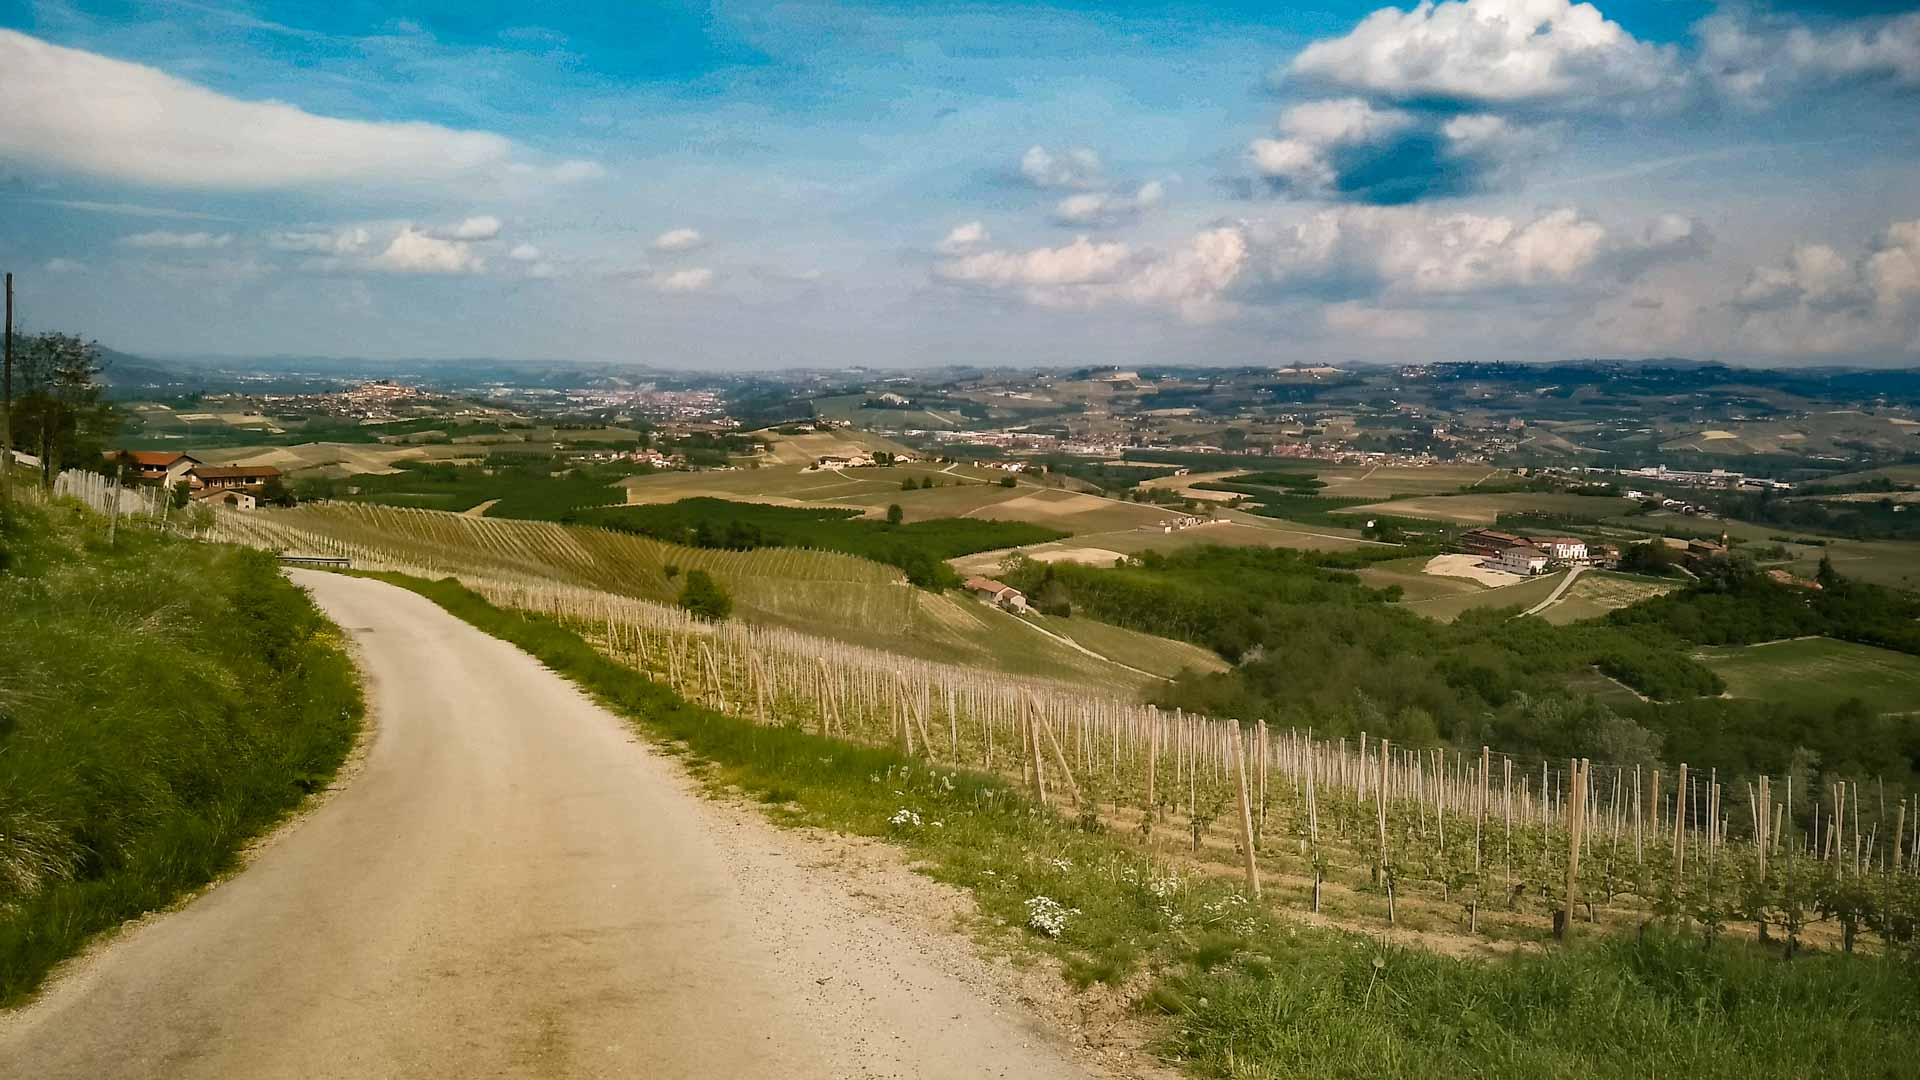 The vineyards and Santa Maria - La Morra